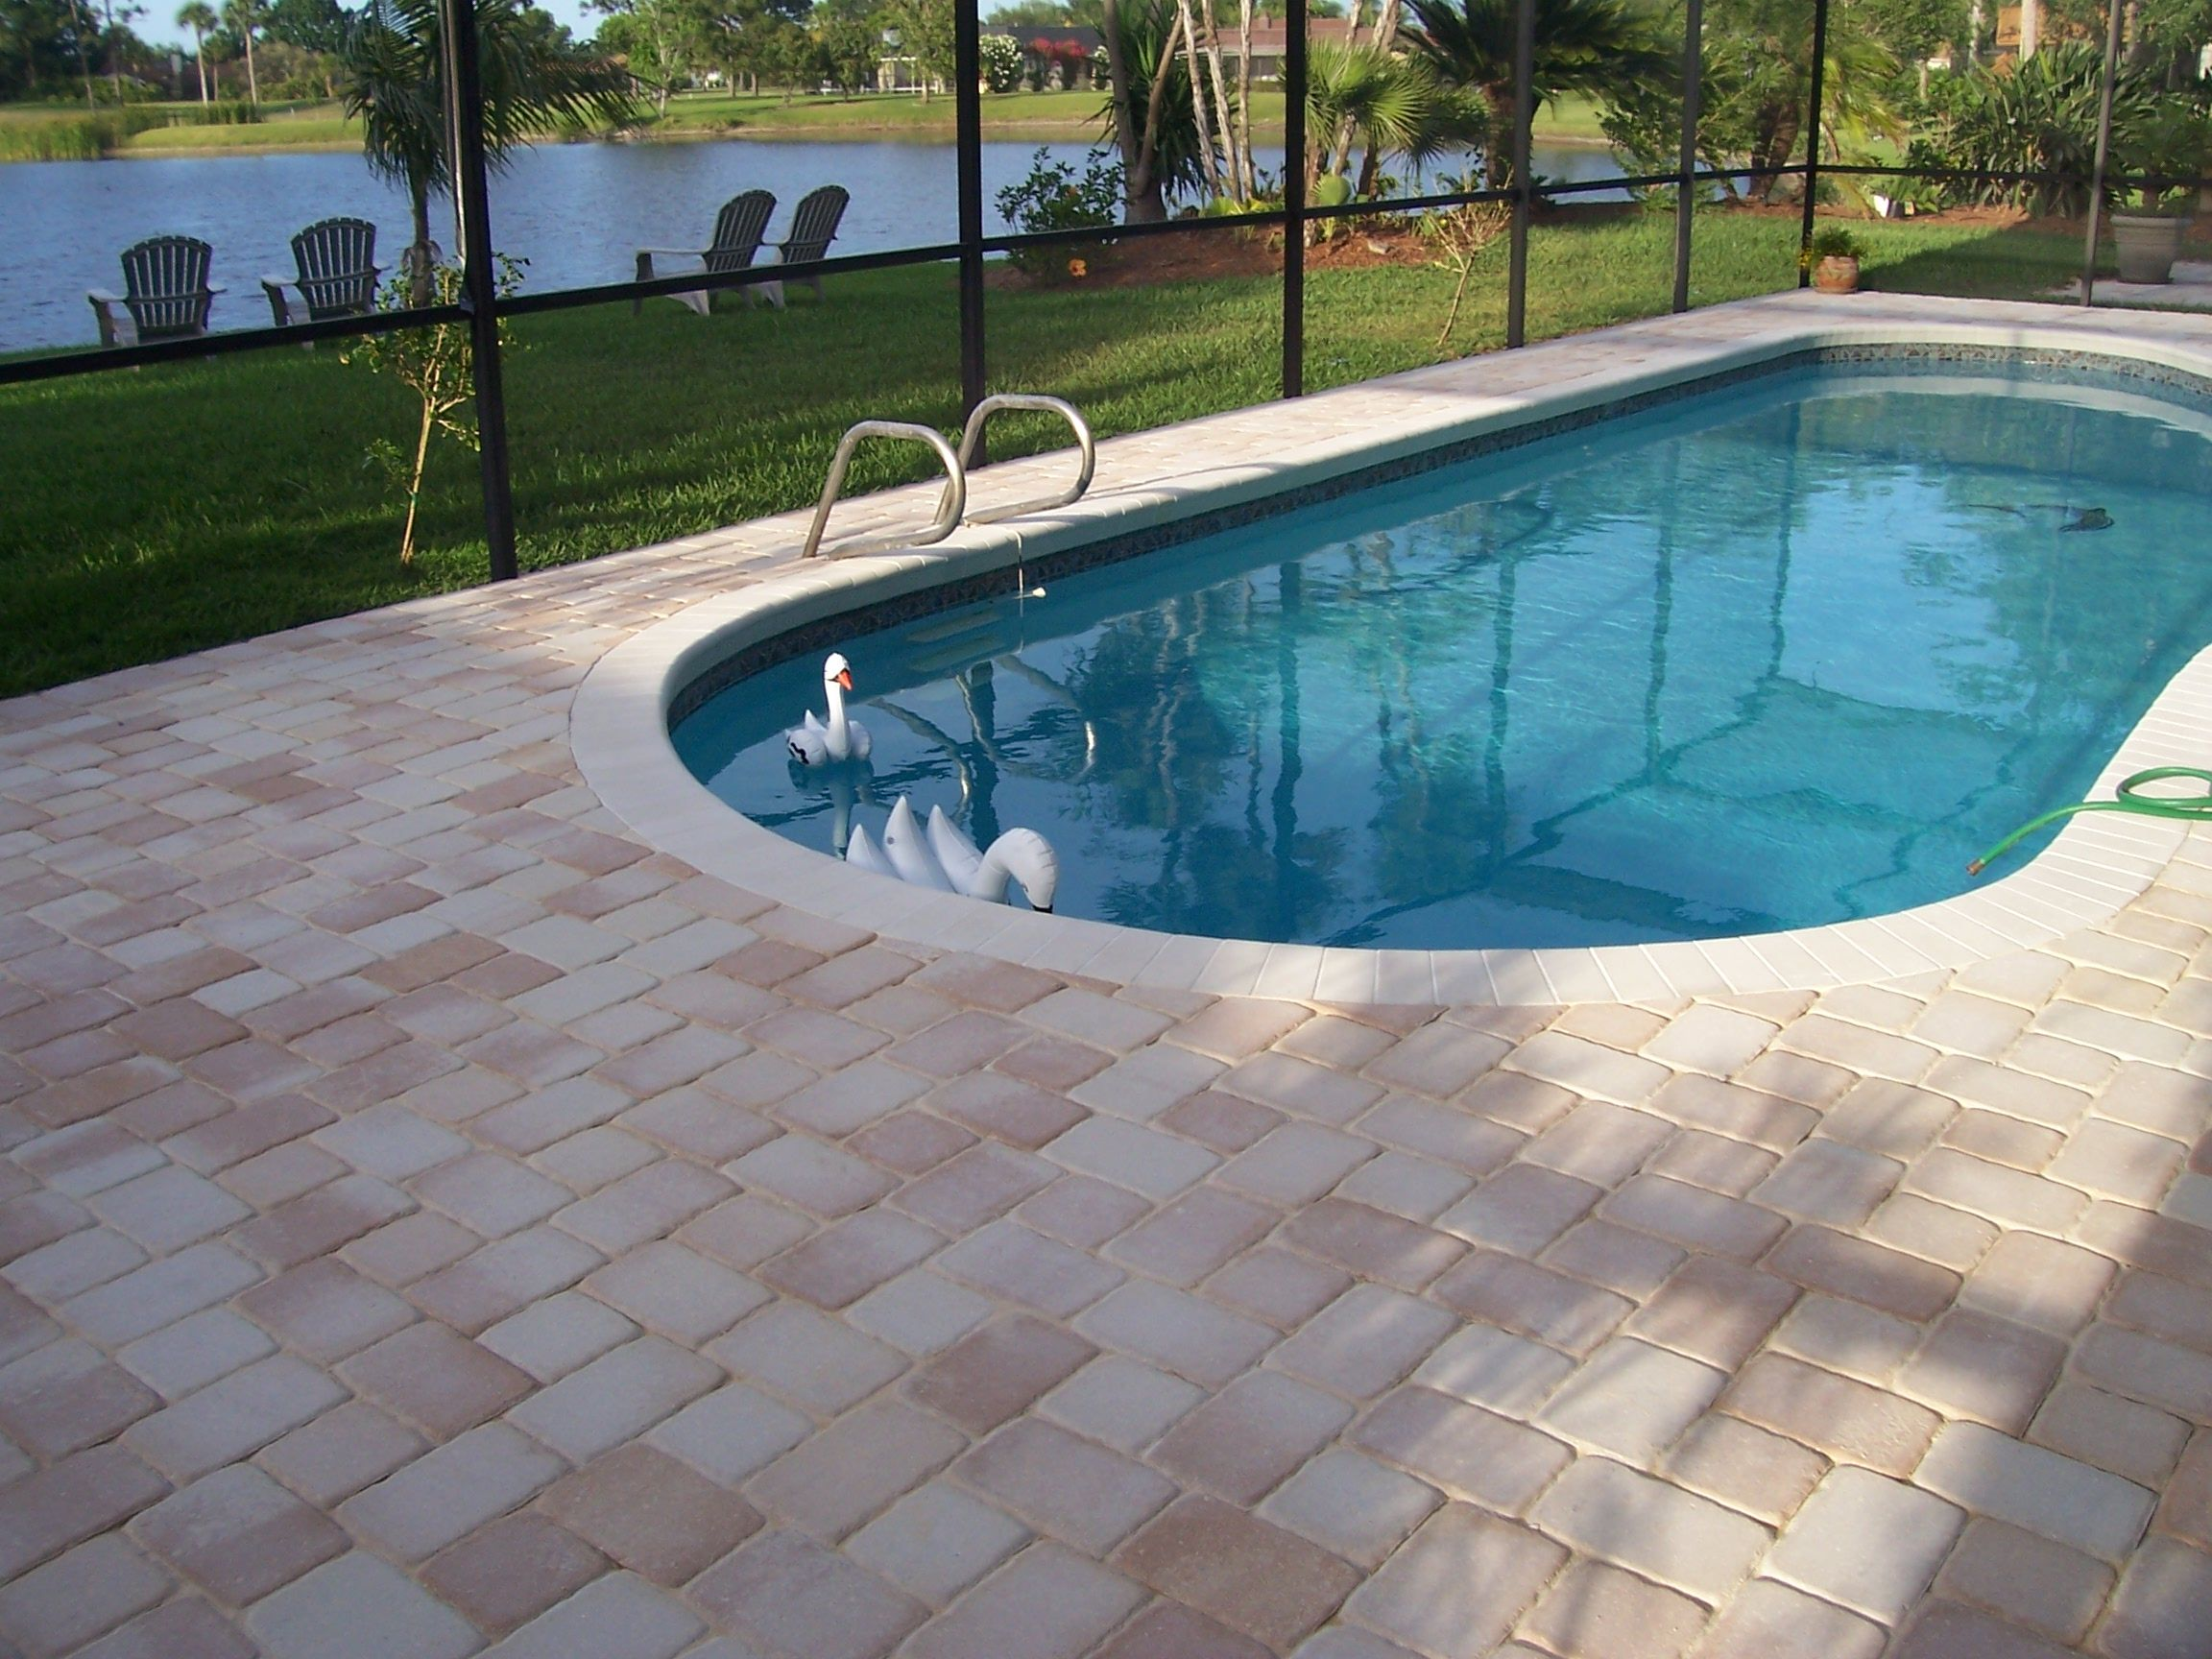 Pool Pavers And Coping Pool Pavers Remodel Your Pool Deck With Pavers From